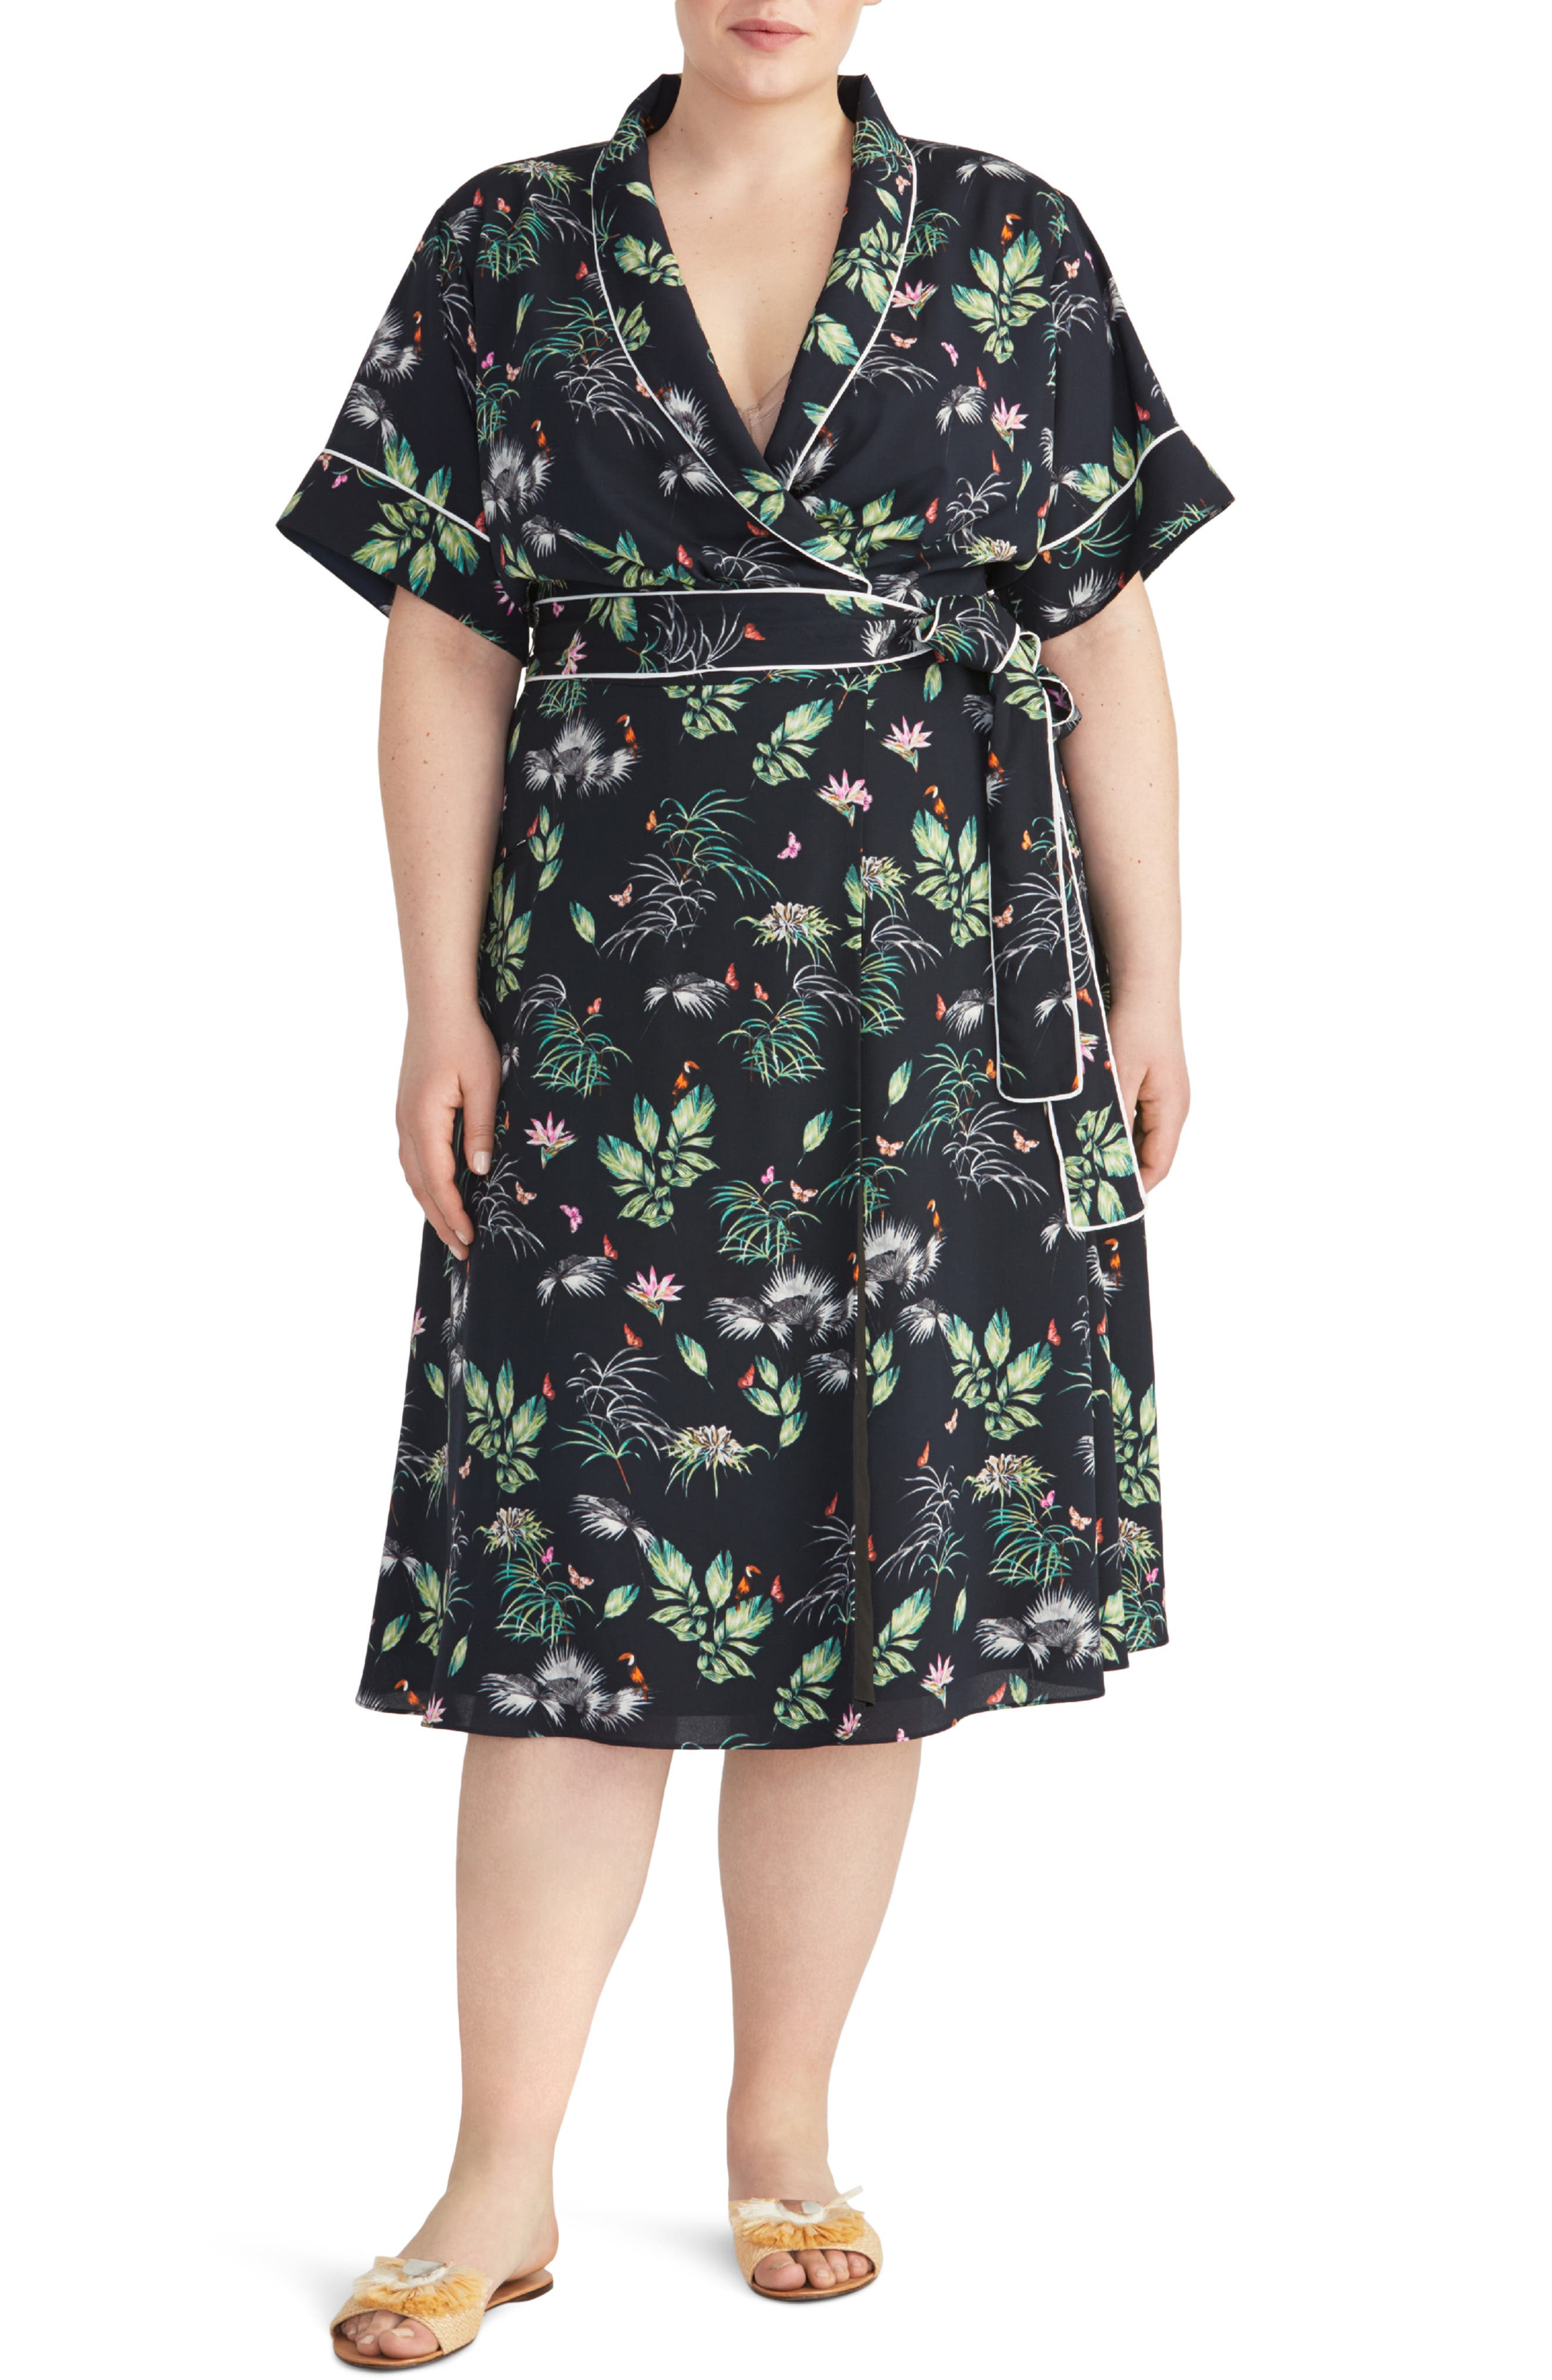 Indian Summers Inspired Clothing Plus Size Womens Rachel Roy Collection Floral Print Tipped Wrap Dress $95.40 AT vintagedancer.com